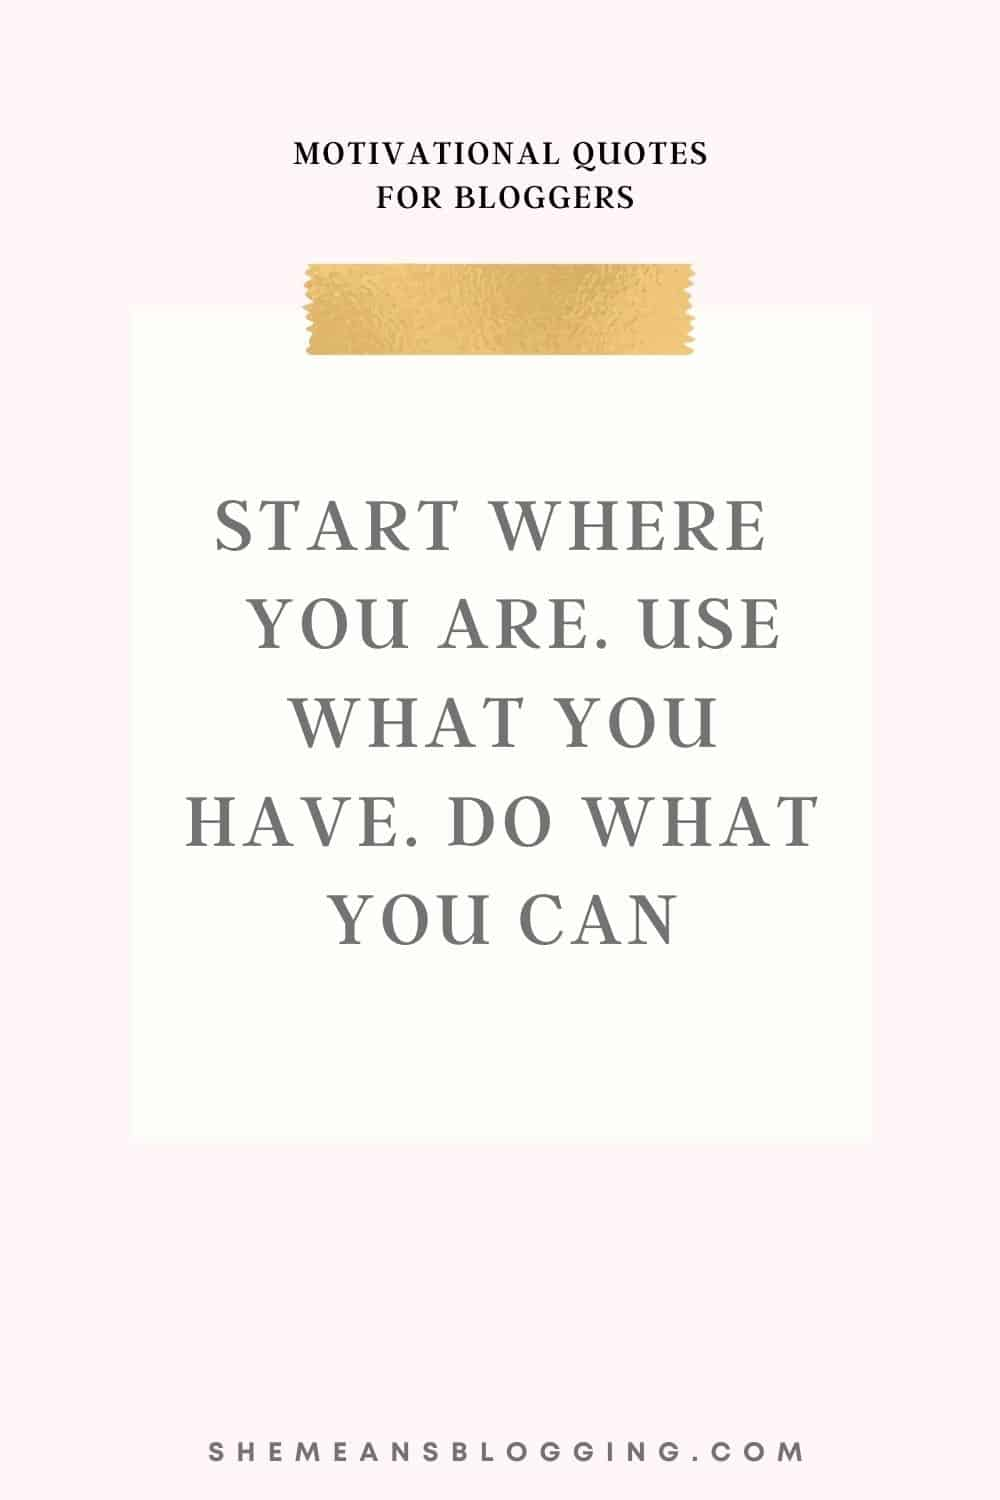 motivational quotes for bloggers, inspiring quotes for entrepreneurs